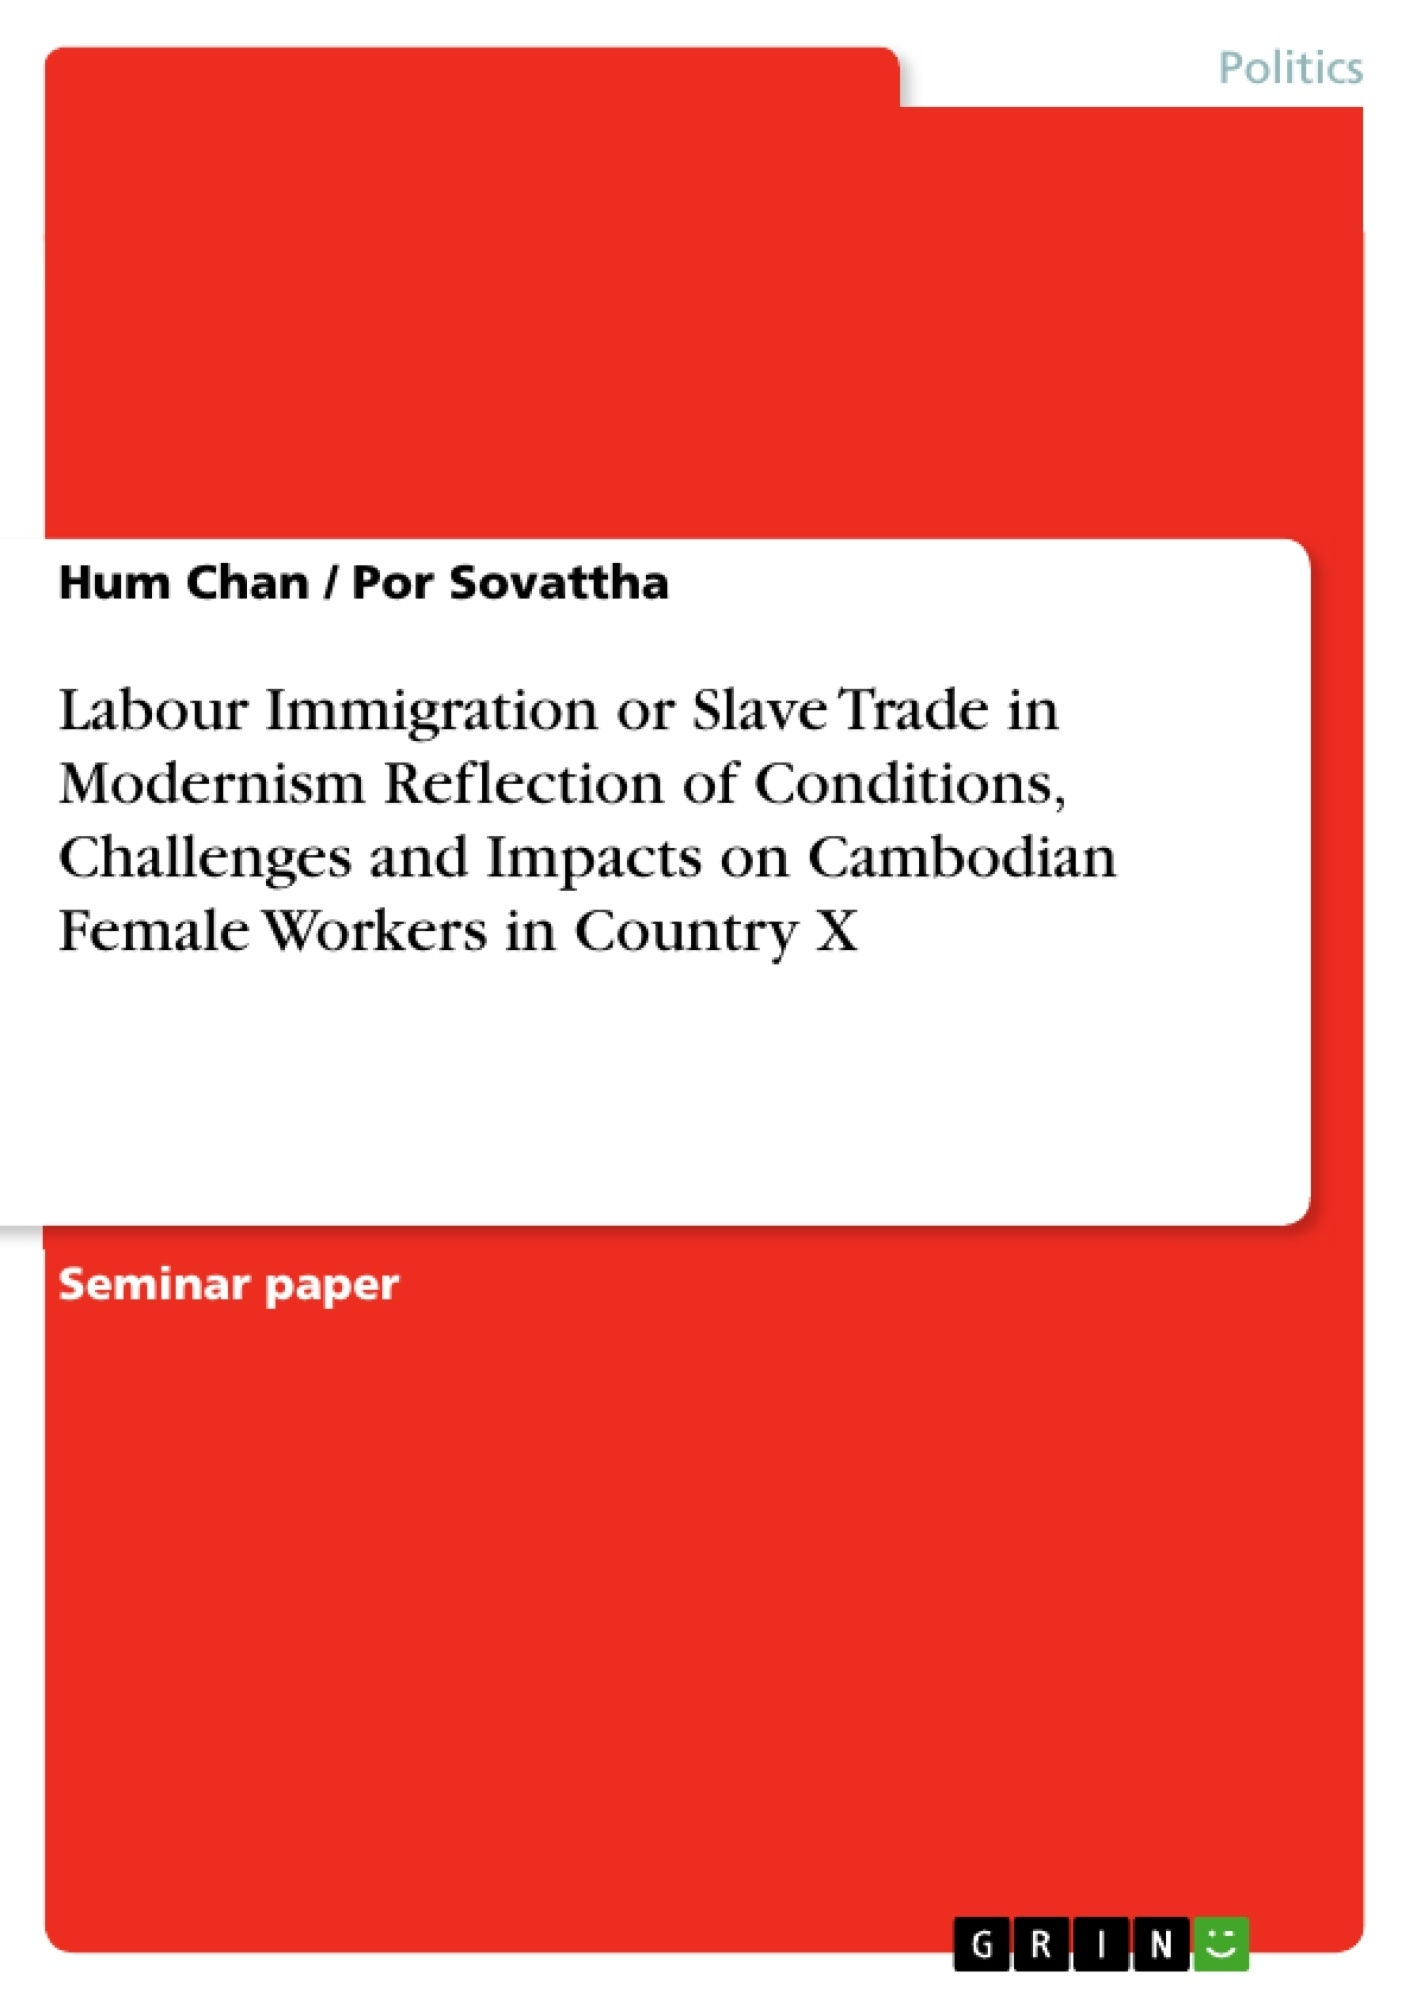 Title: Labour Immigration or Slave Trade in Modernism Reflection of Conditions, Challenges and Impacts on Cambodian Female Workers in Country X